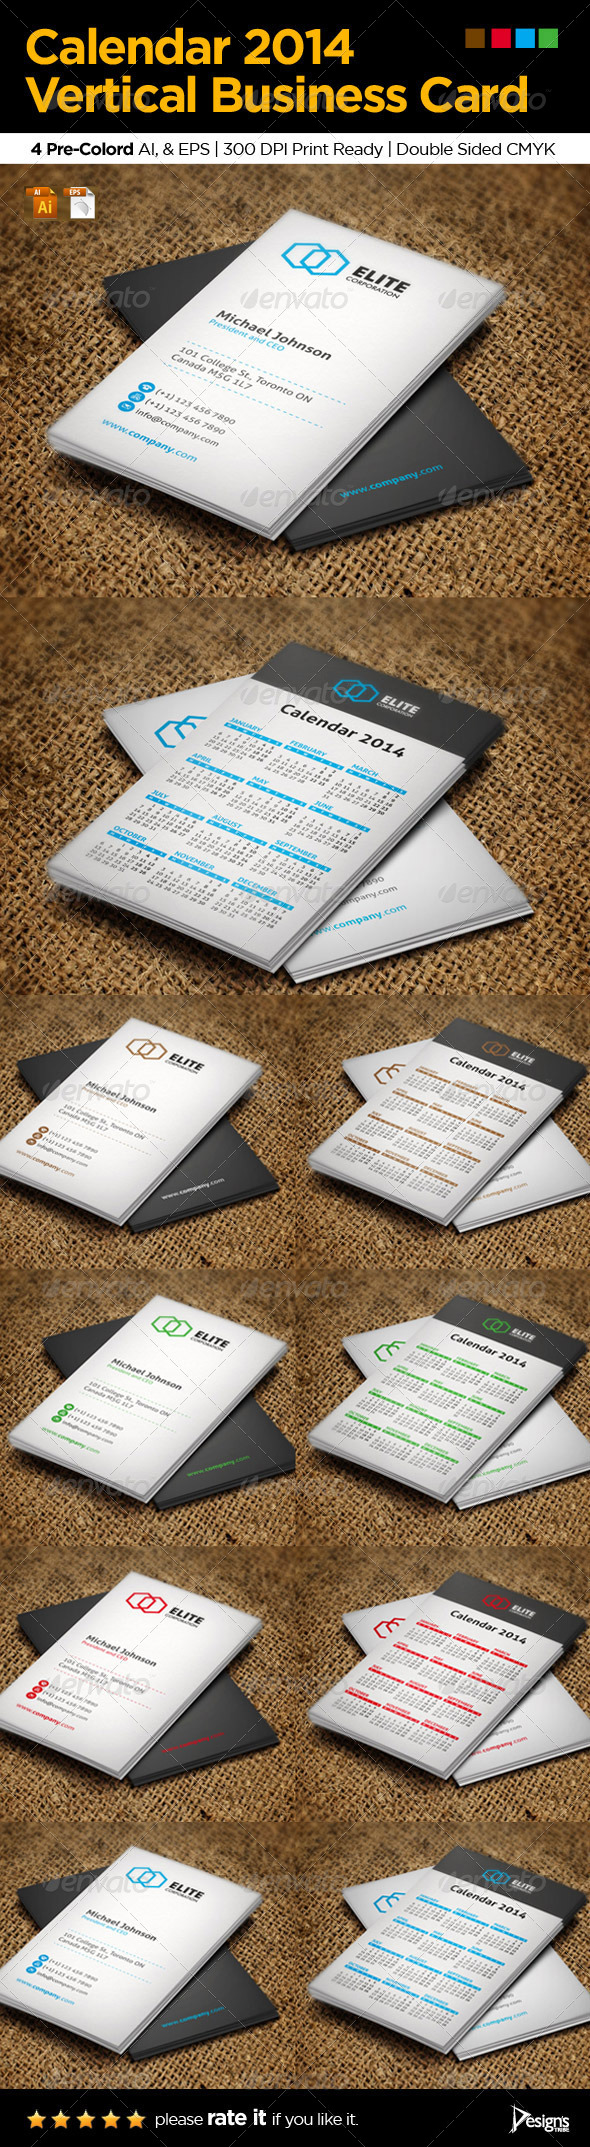 Calendar 2014 Vertical Business Card - Creative Business Cards